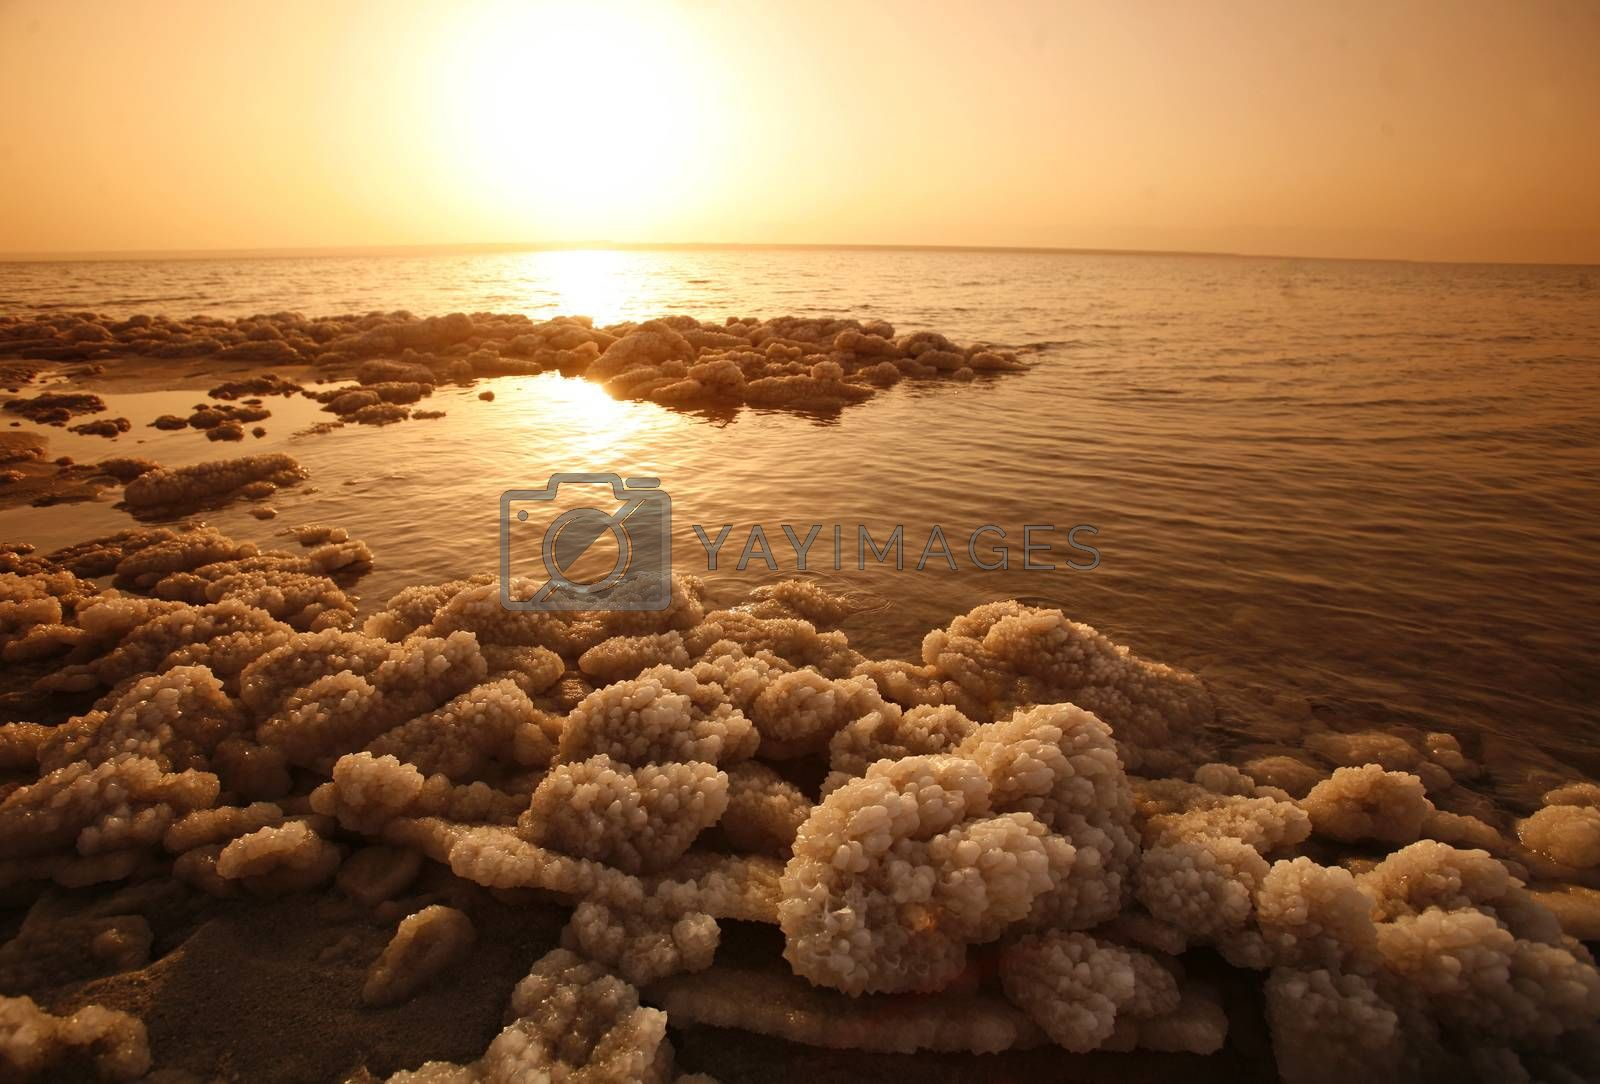 The coast with natural salt of the death sea neat the Village of Mazraa in Jordan in the middle east.